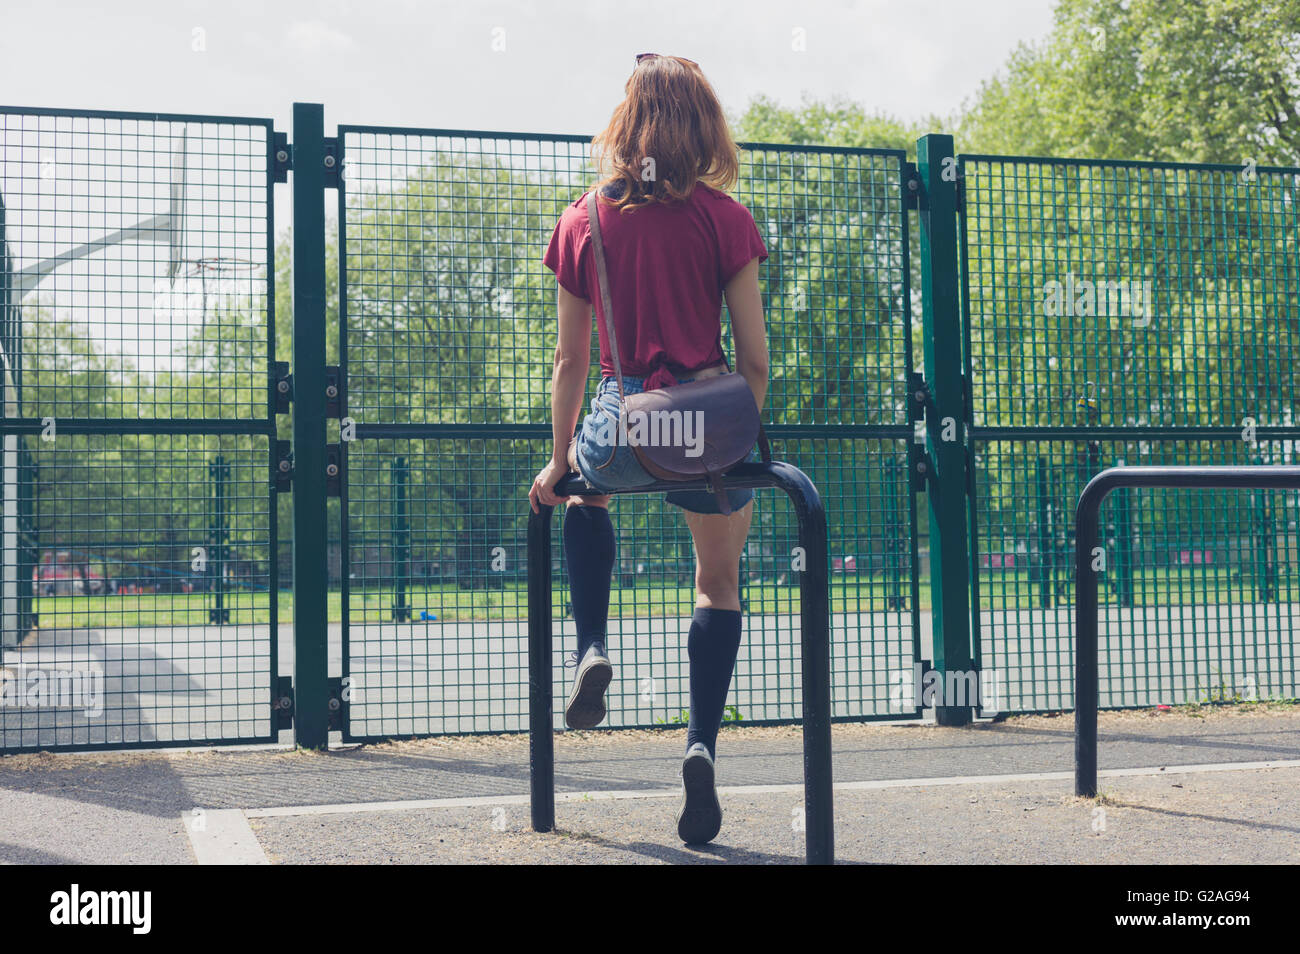 A young woman is sitting on a rail in a park outside a basketball court on a summer day - Stock Image